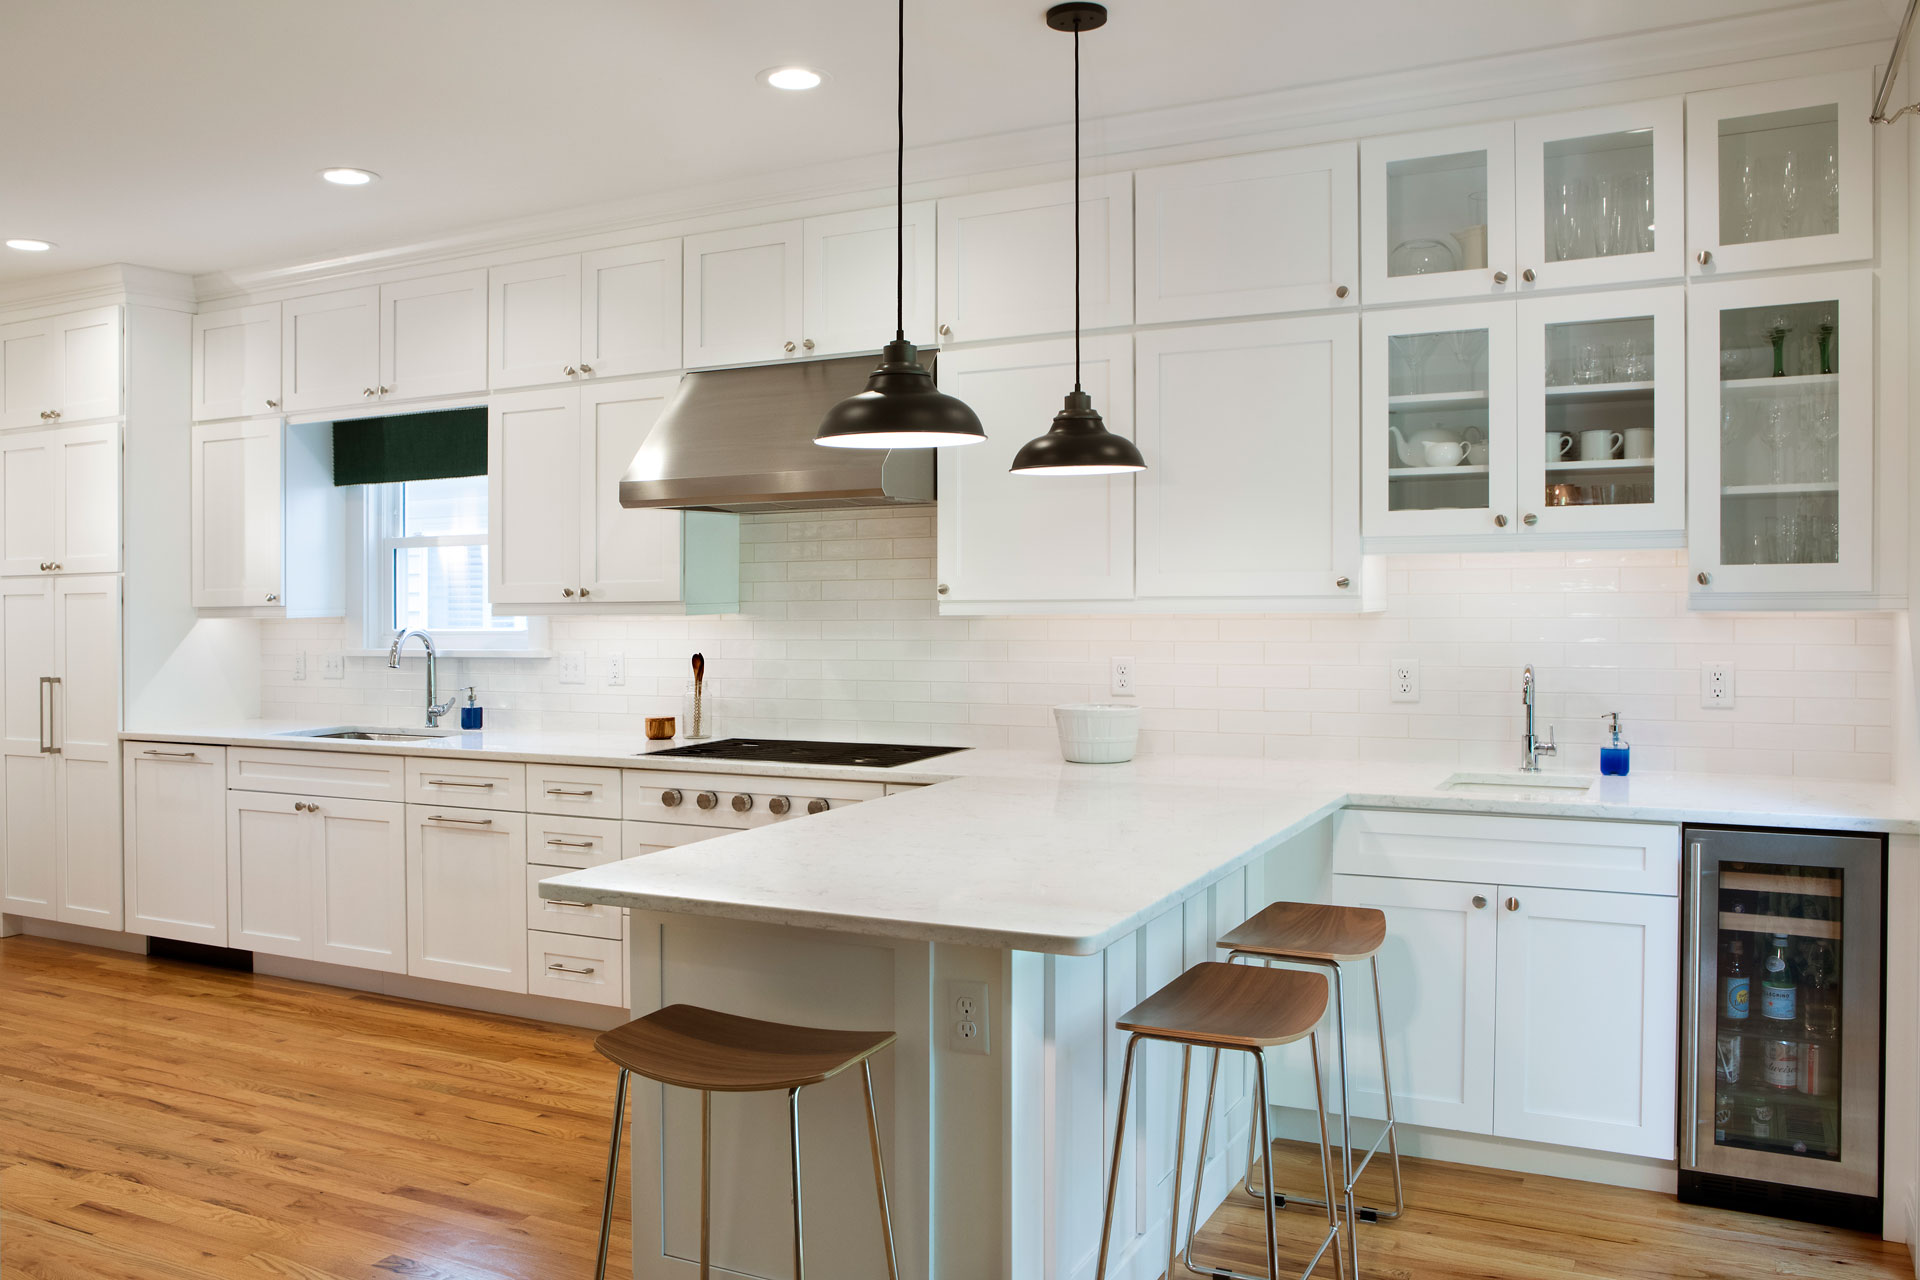 Roeser-Home-Remodeling-St-Louis-McCullough_kitchen-remodel-1